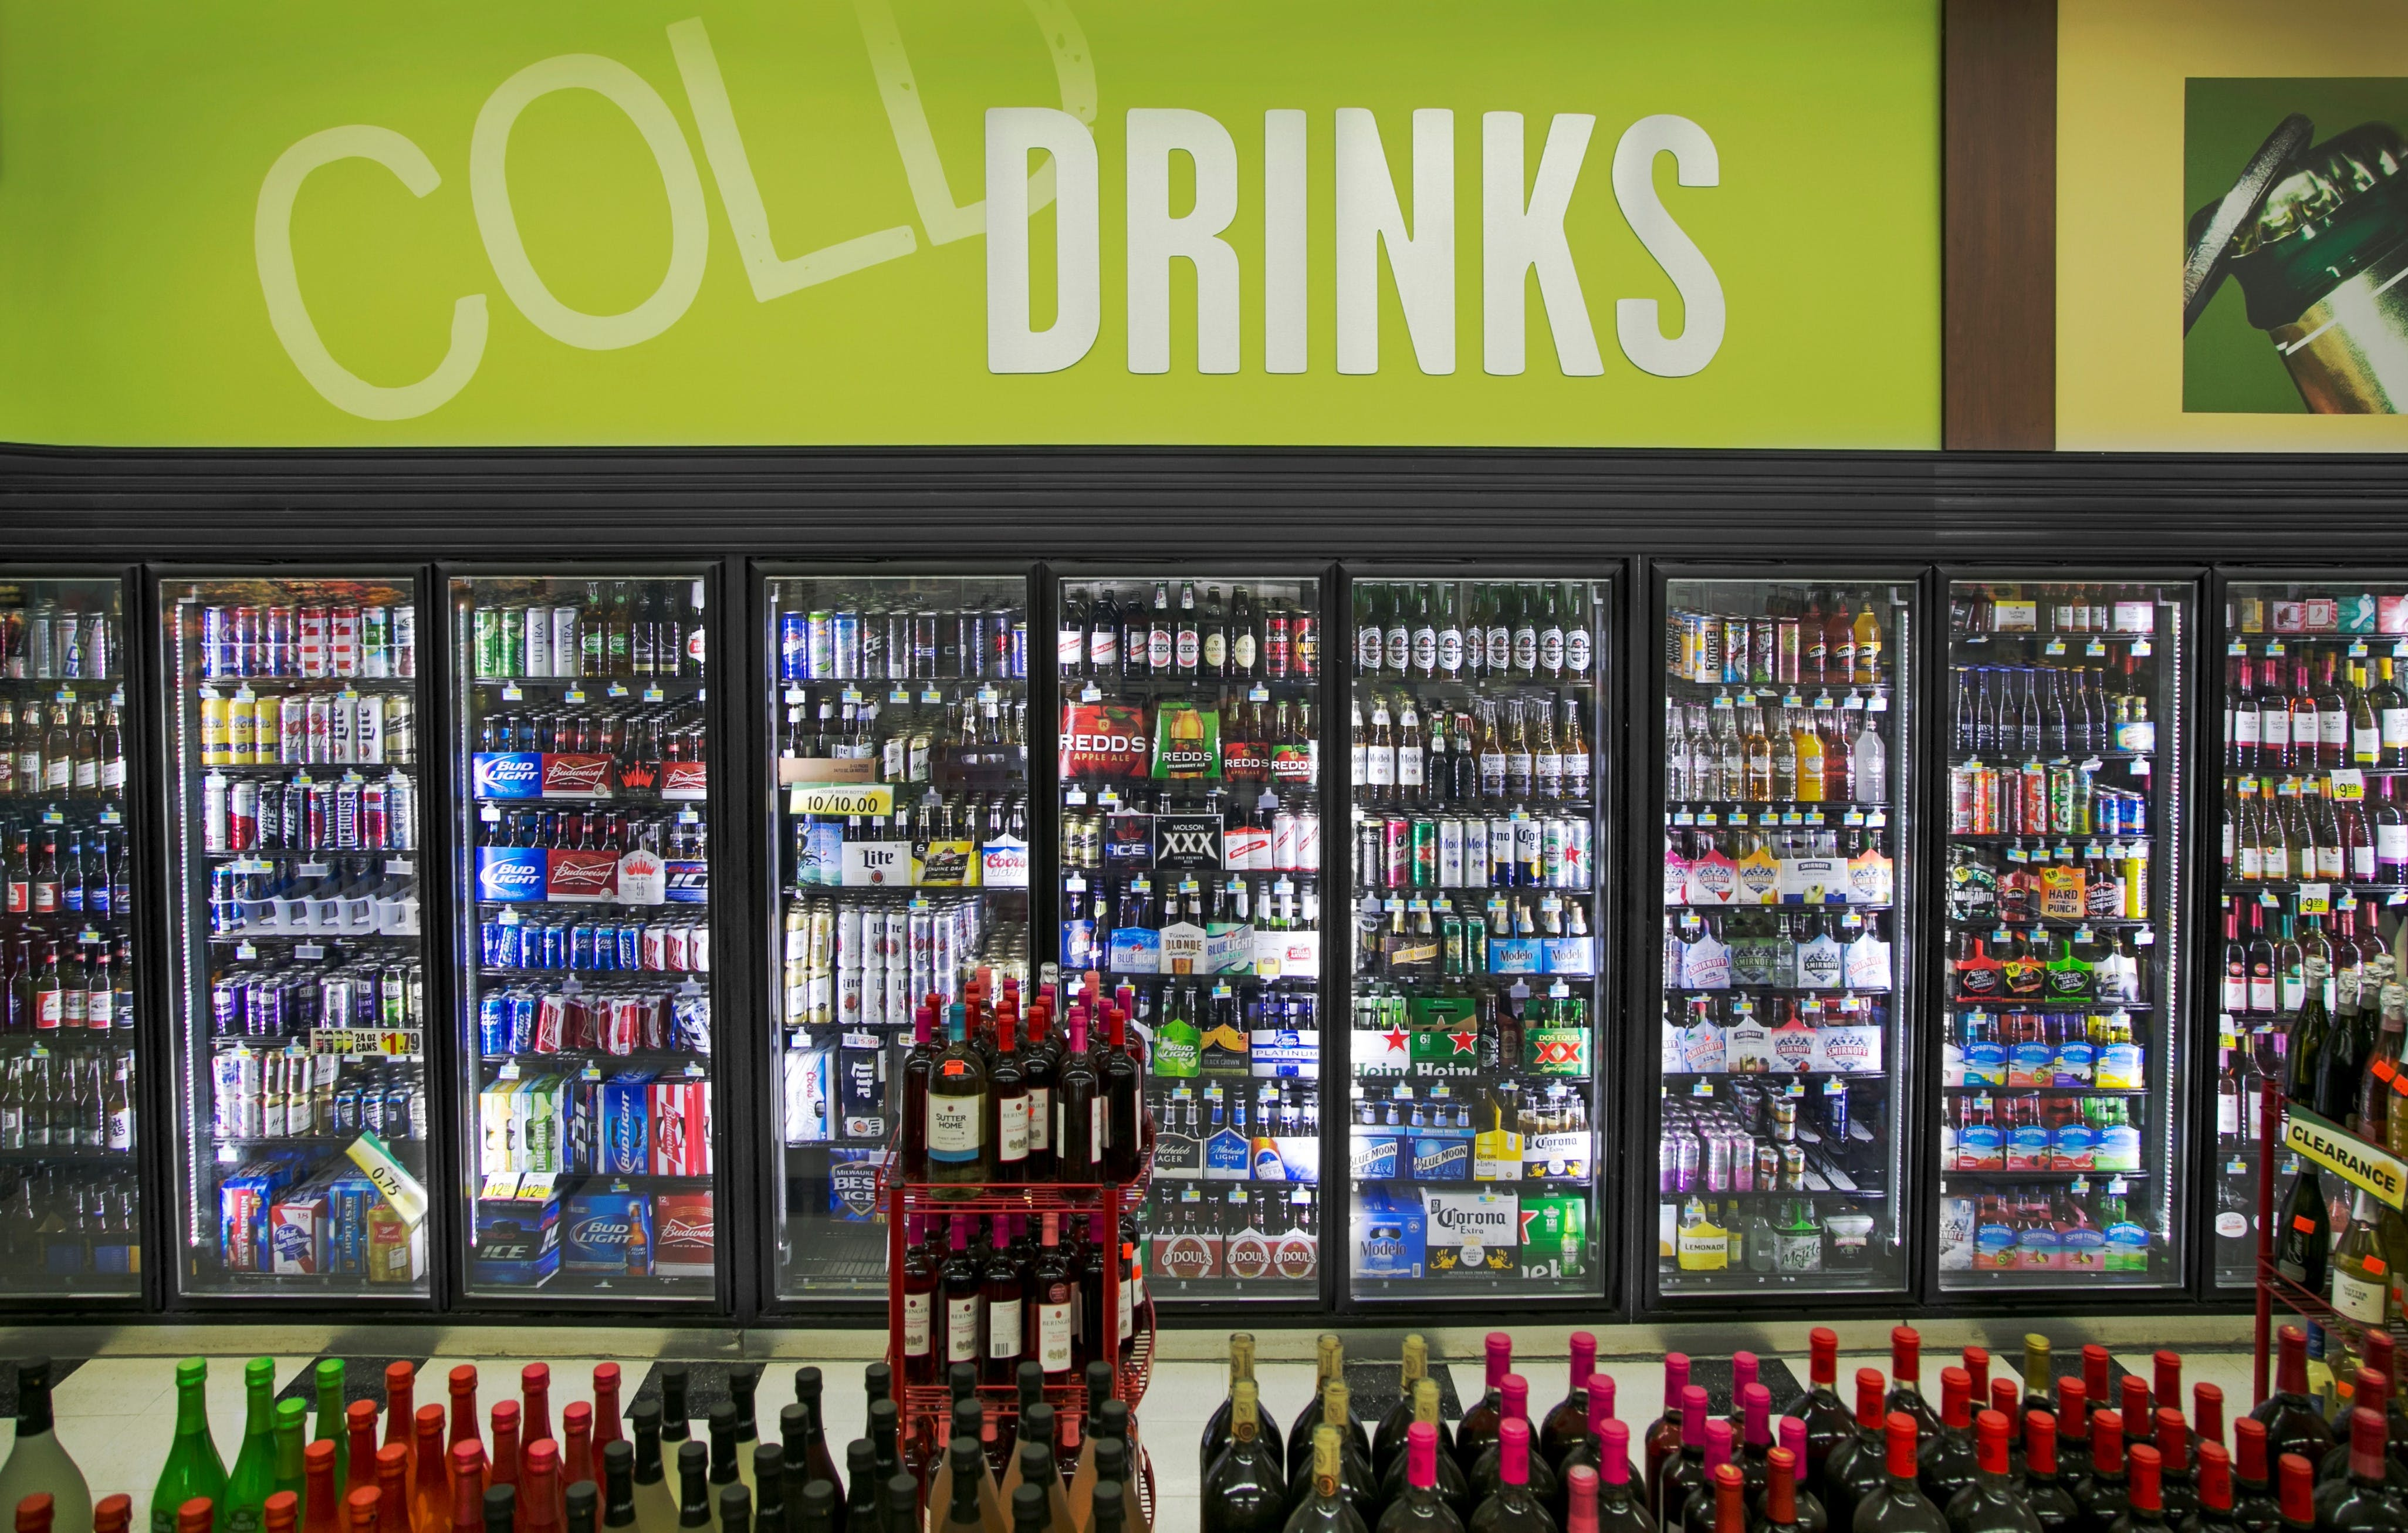 Display Door Cooler - Walk in cooler with 8 display doors, Box size 8' x 21.5' x 8.2' SAMS-V - sold by Easy Refrigeration Company